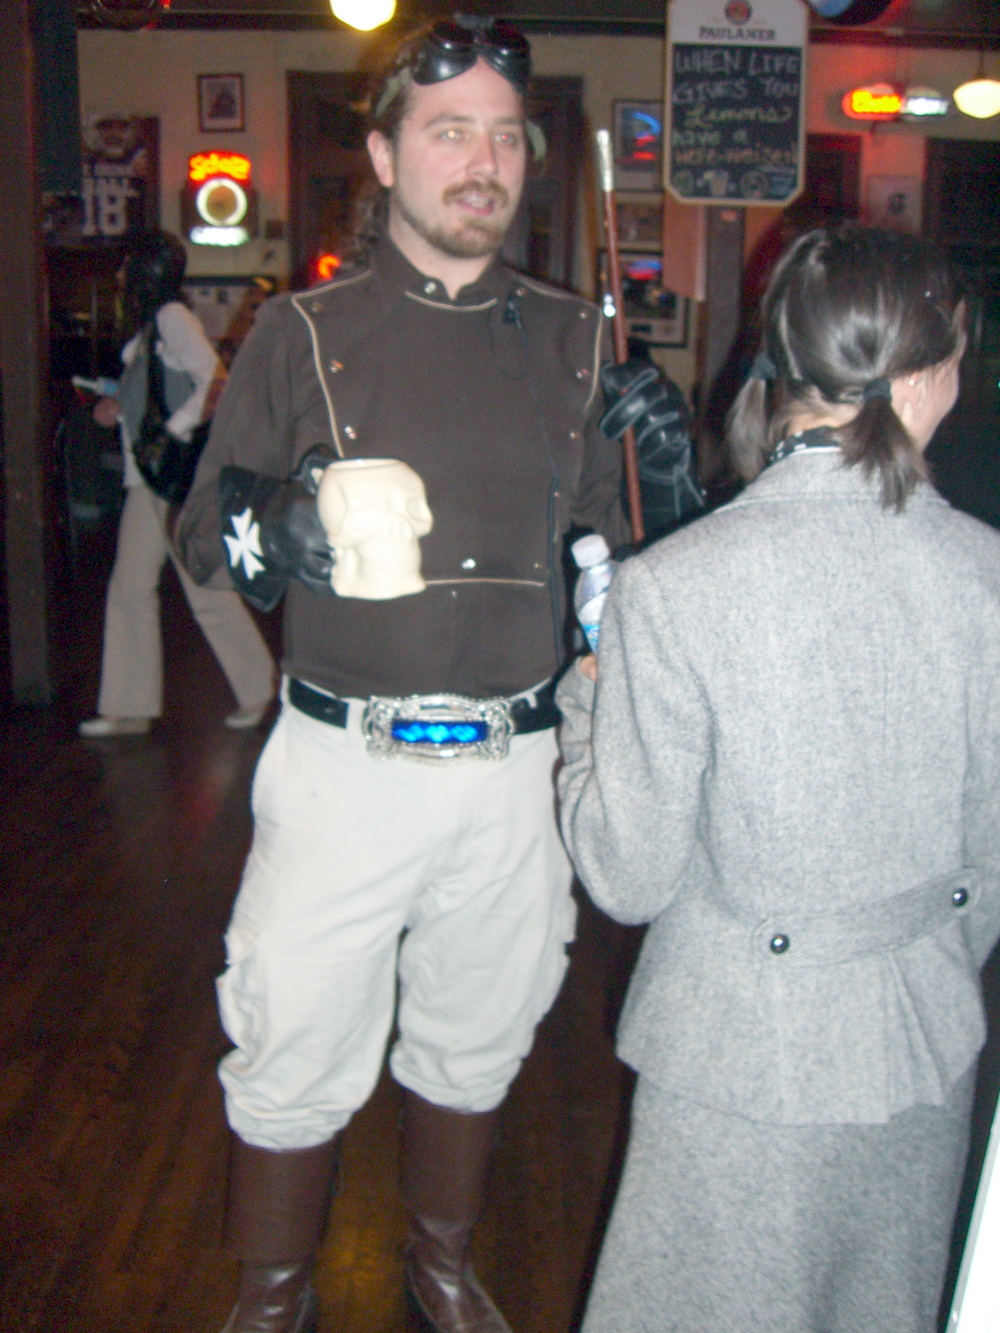 A military-themed steampunk costume with requisite goggles